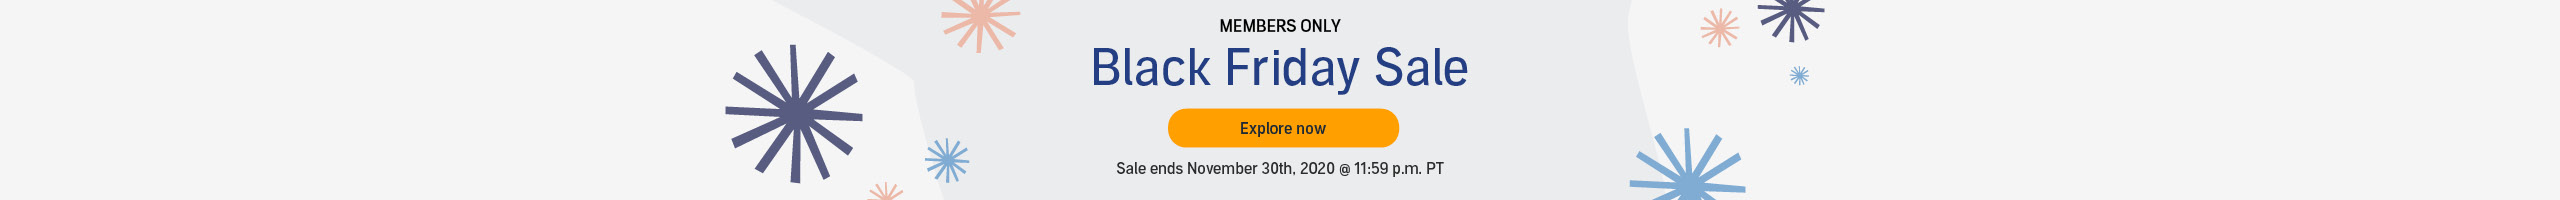 Members Only - Black Friday Sale. Our biggest sale of the year – over 250 titles from $3.95. Sale ends November 30th, 2020 @ 11:59 p.m. PT. Explore Now >>